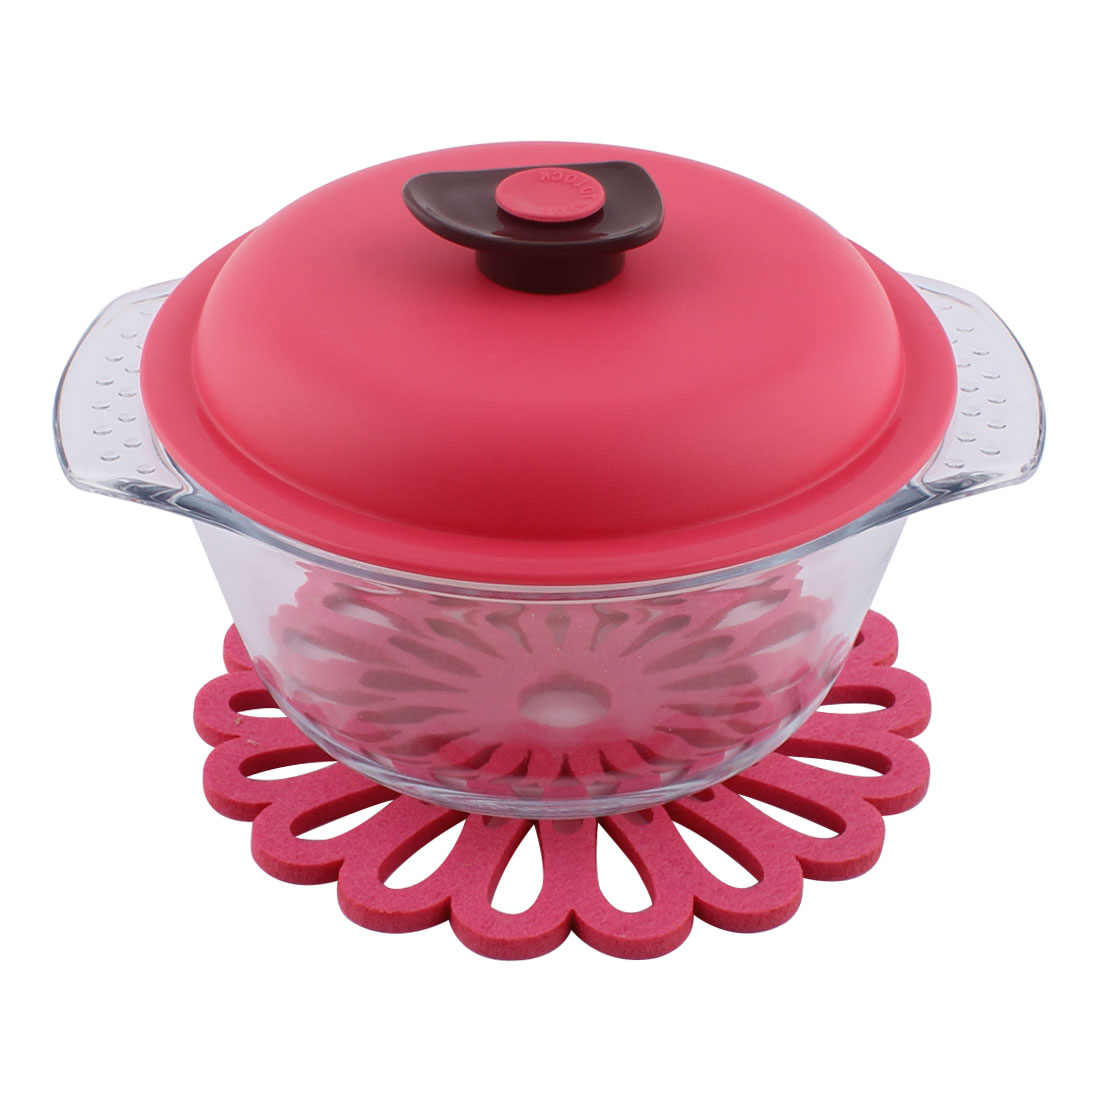 Household Kitchenware Glass Sealing Lid Enclosed Stockpot Saucepan Stock Pot Set